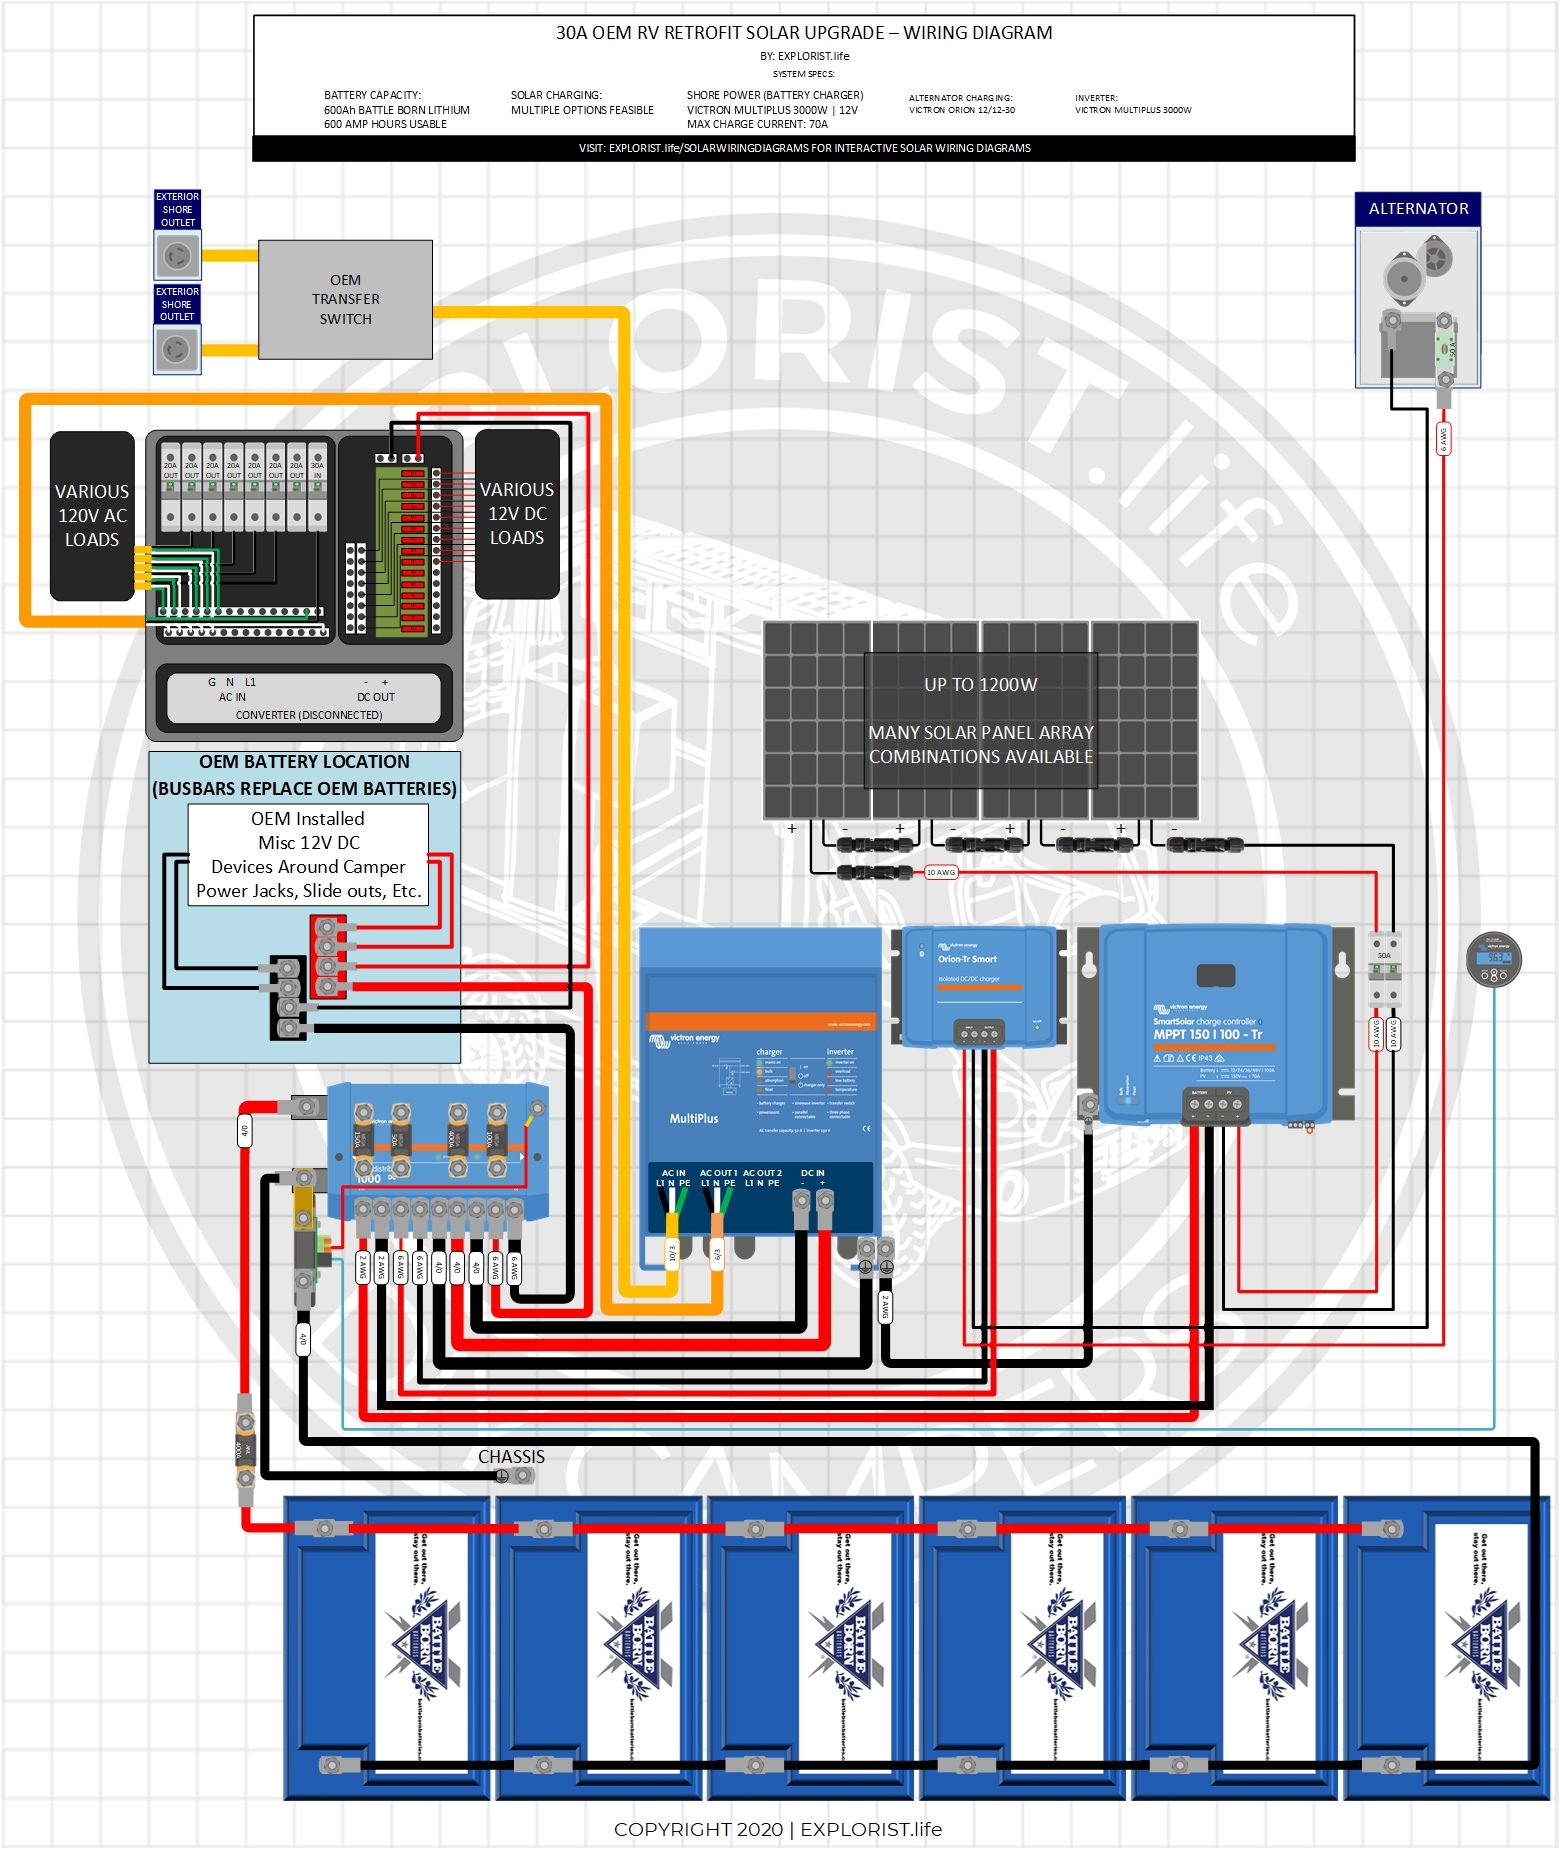 30A Camper – Inverter W/ Solar & Alternator Charging – High Res Wiring Diagram